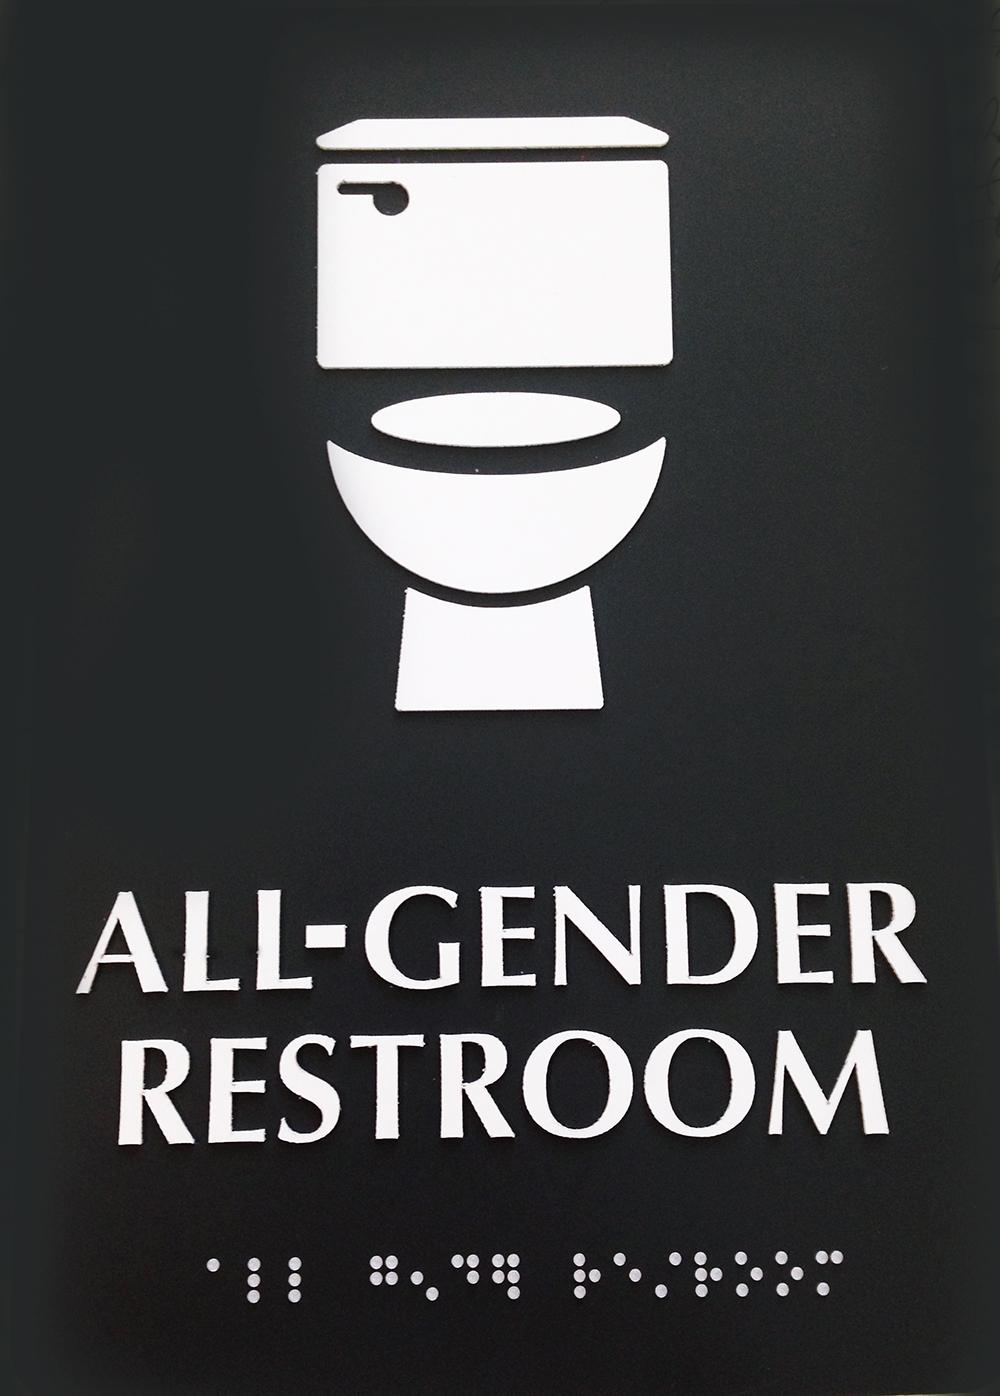 All Gender Bathroom Signs The Laurel Of Asheville